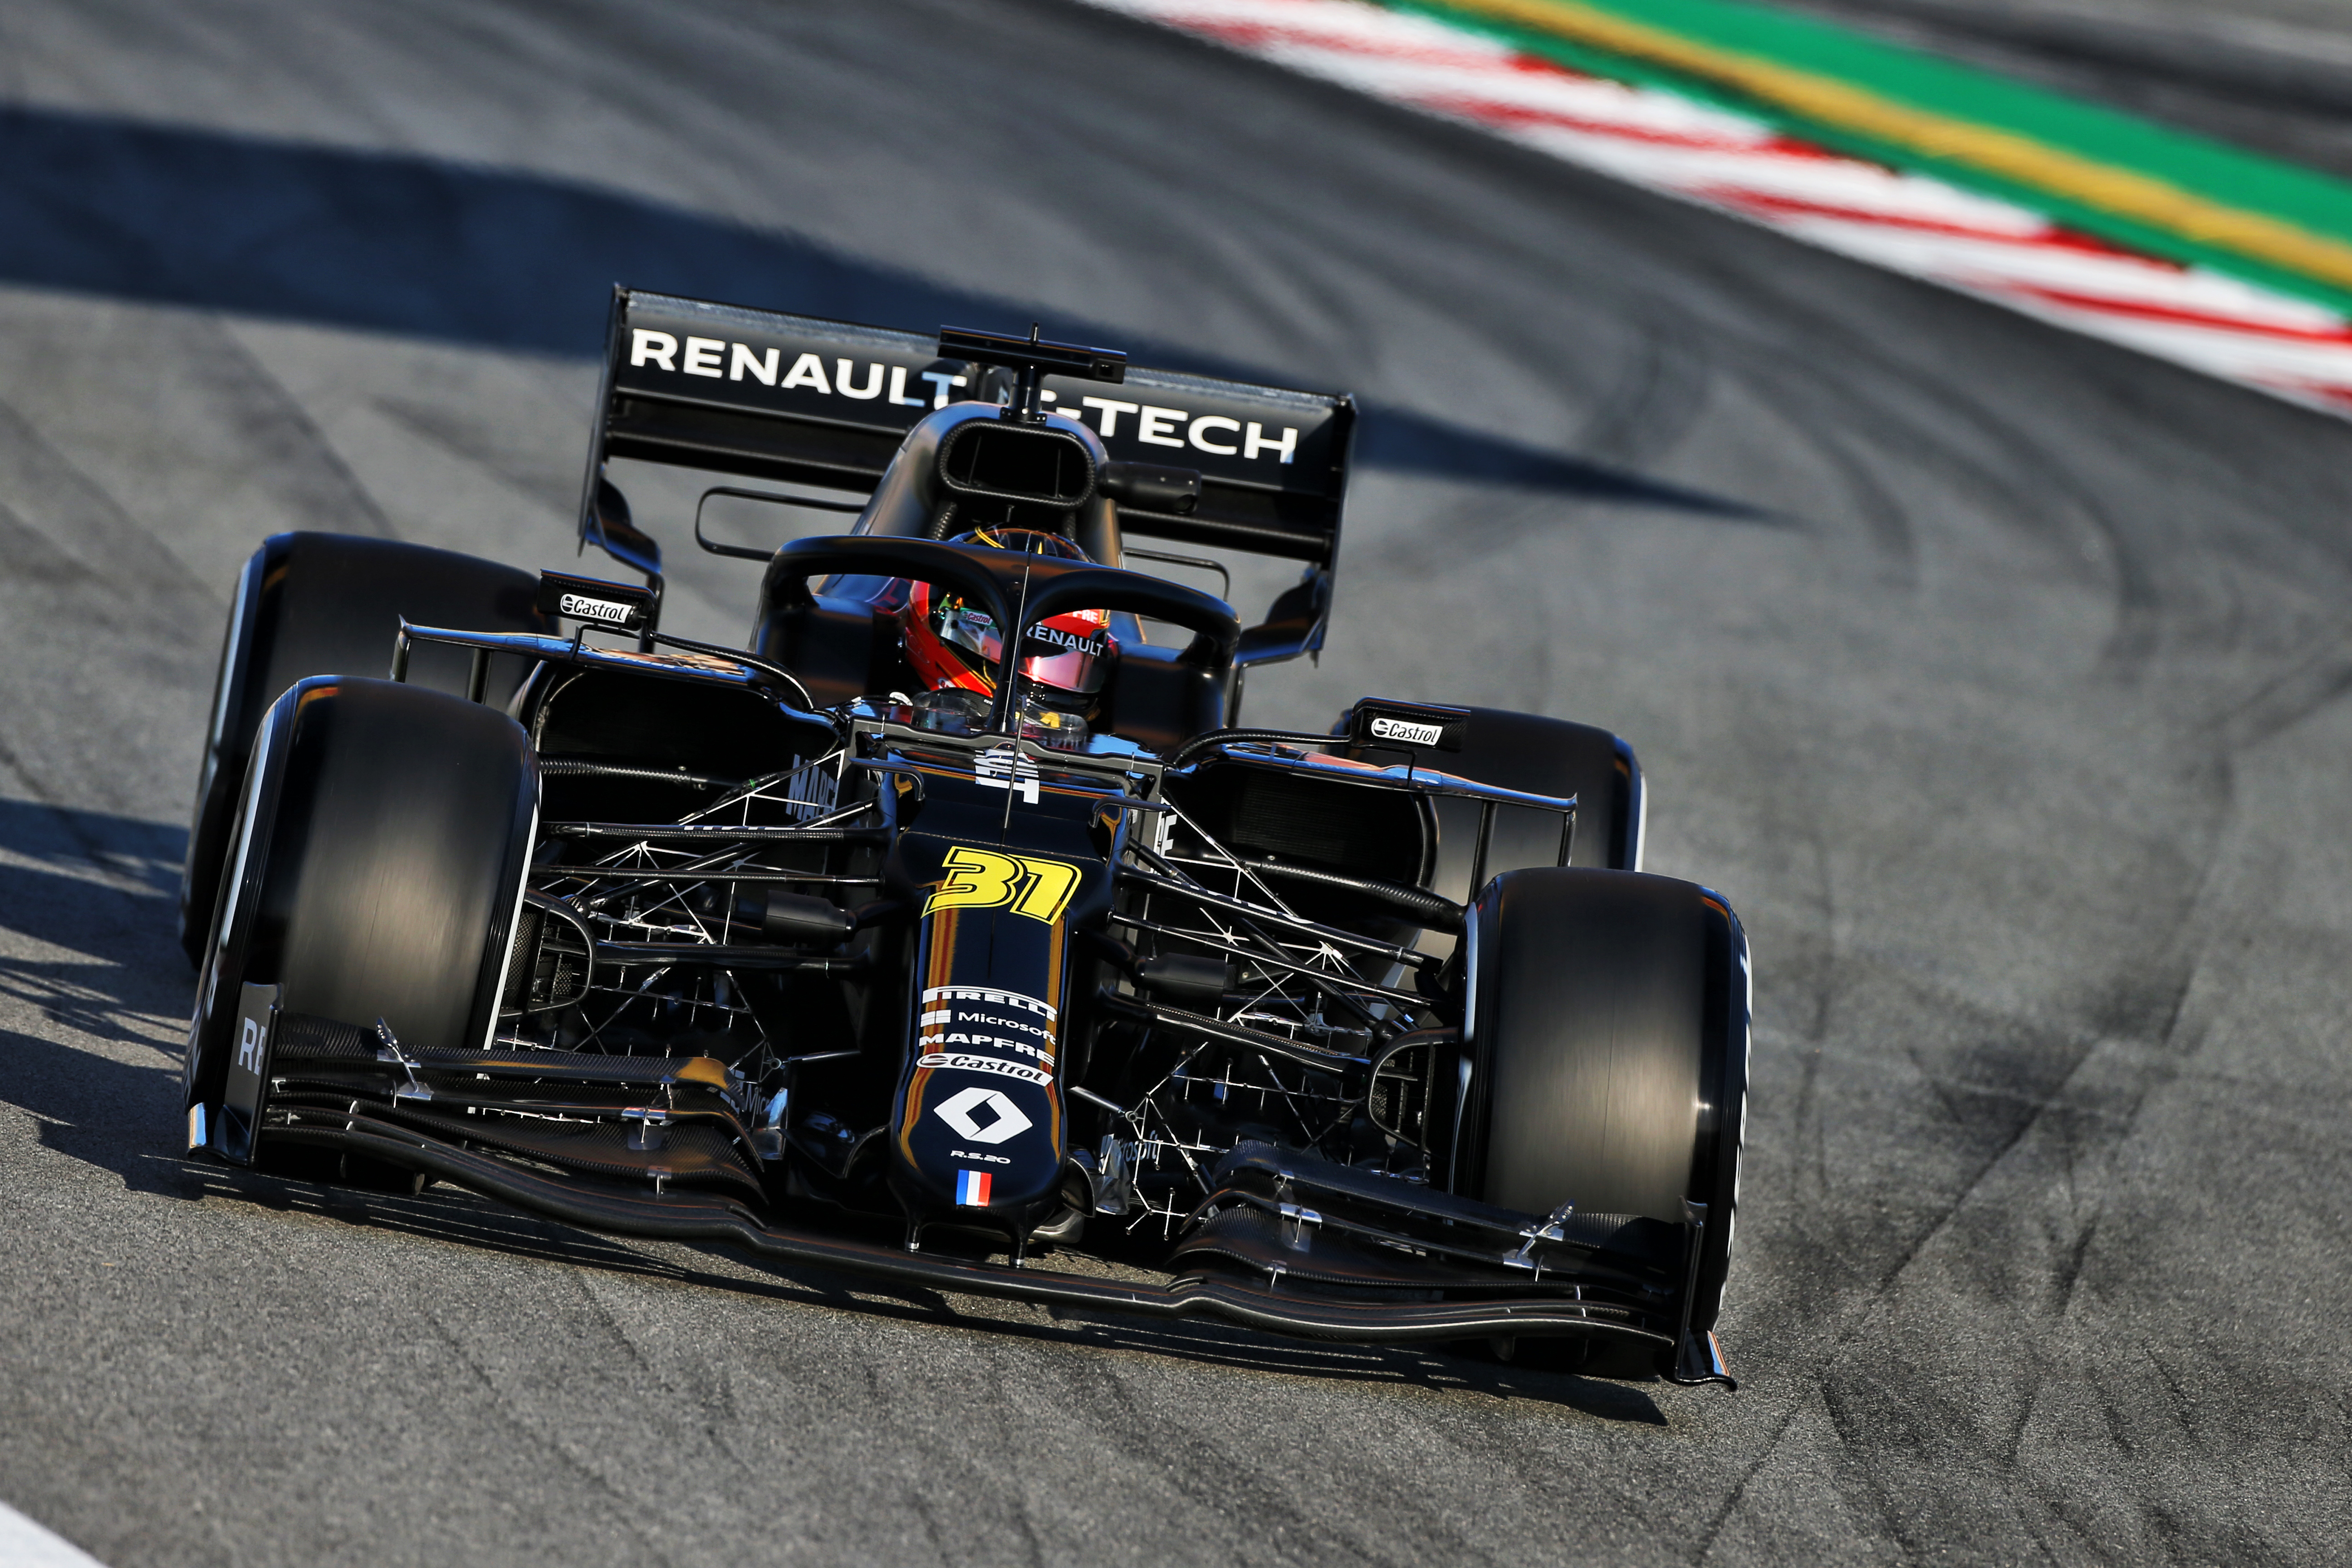 Gary Anderson Explains Renault S Ultra Narrow Nose Gamble The Race